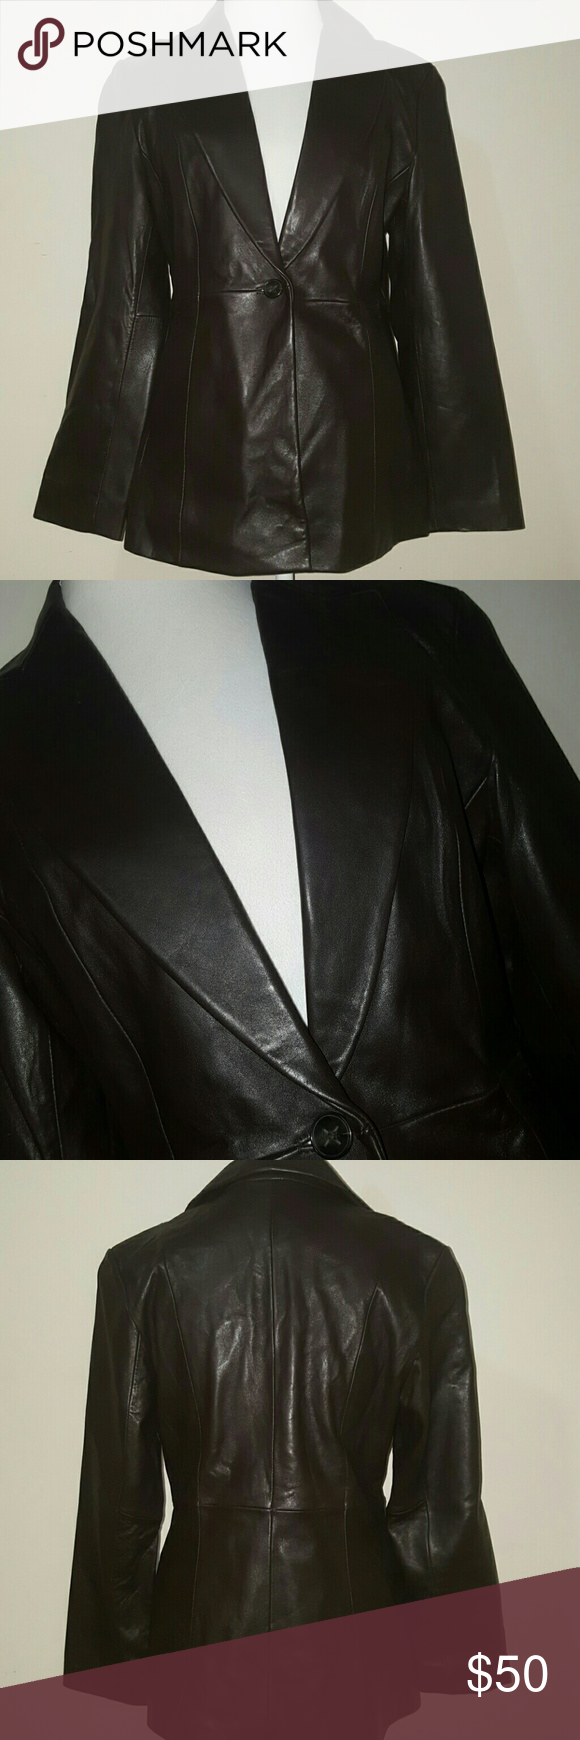 JLC, OUTERWEAR LEATHER COAT/BLAZER JLC , OUTERWEAR, BROWN LEATHER COAT/BLAZER FRONT POCKETS  GENTLY WORN! MINOR WEAR ON BOTTOM LEFT LOWER SLEEVE AS SHOWN IN PICS  GREAT FOR EARLY FALL AND SPRING. JLC Jackets & Coats